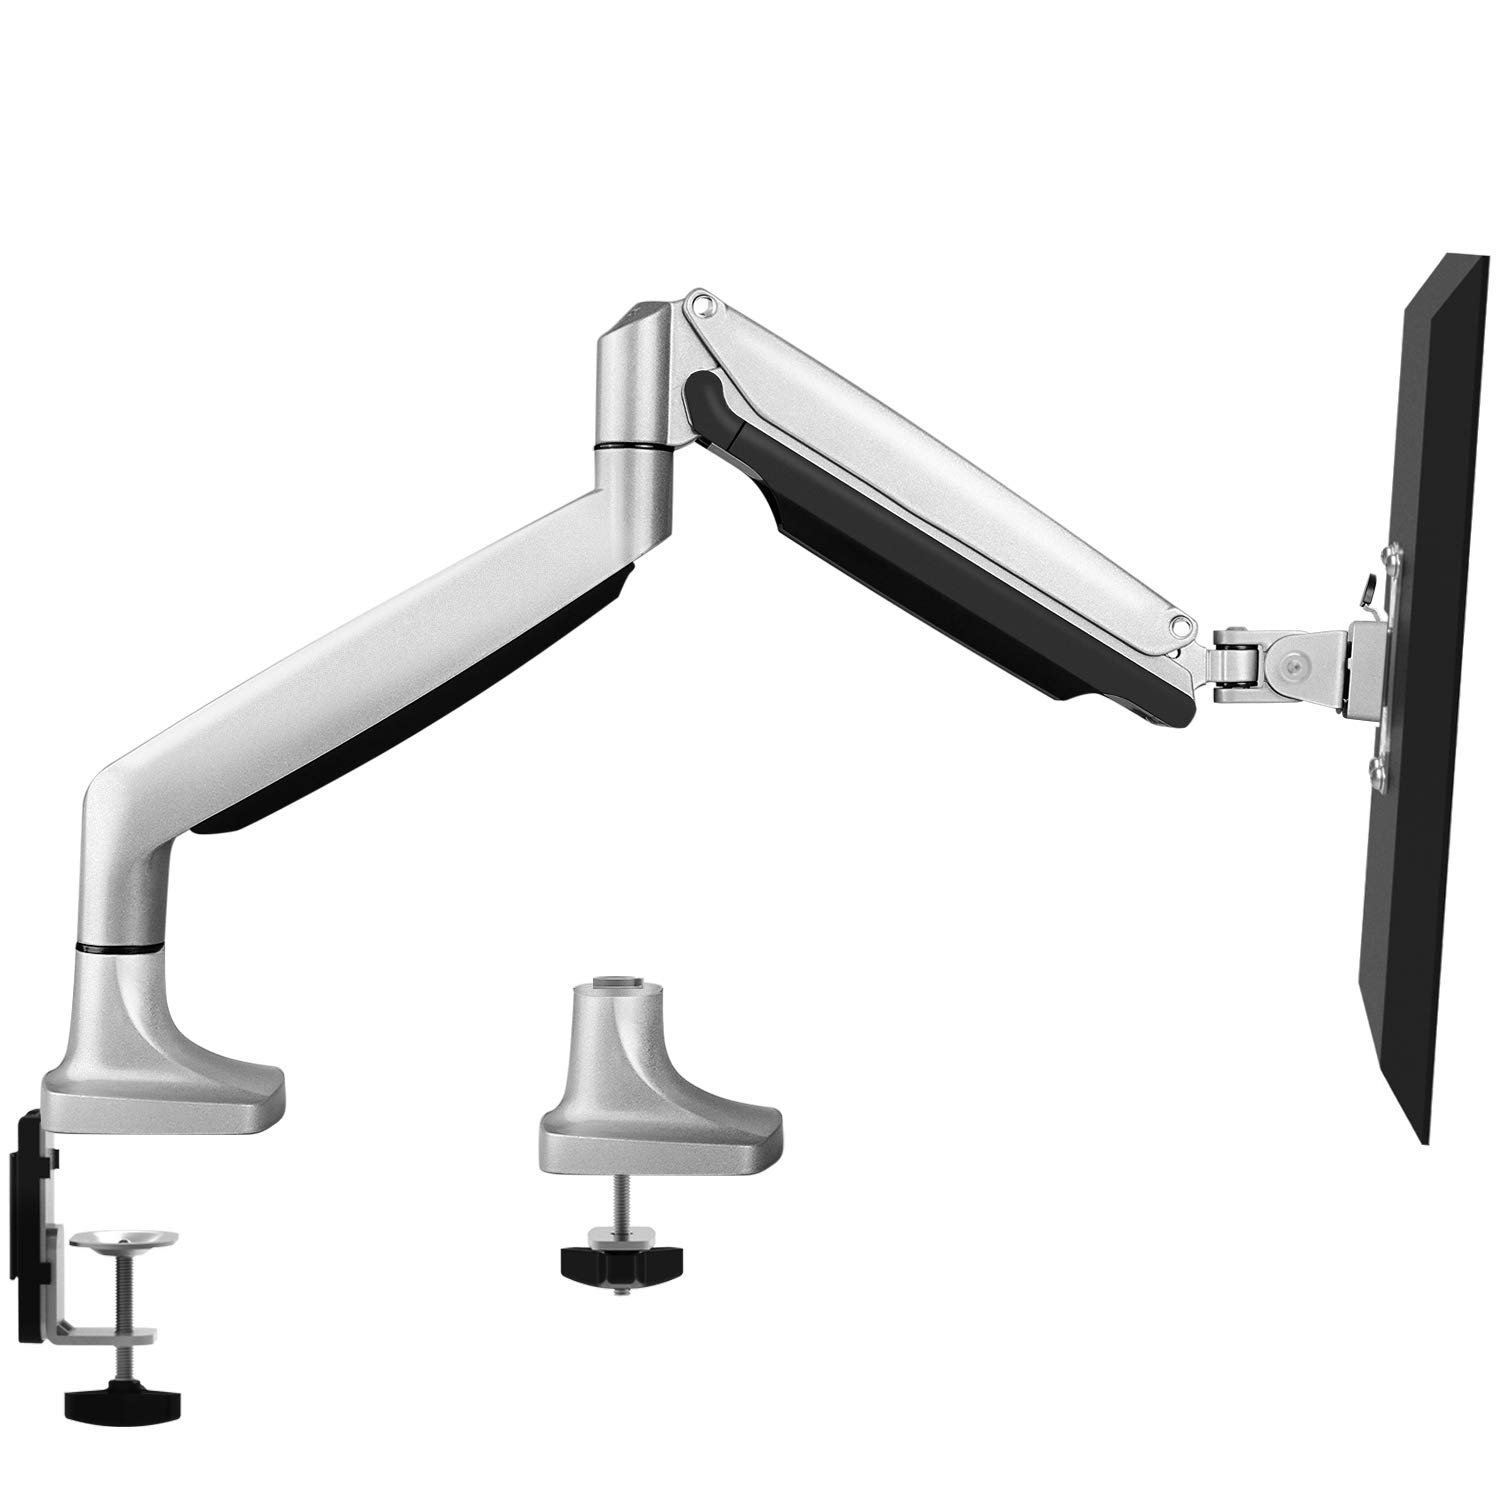 Single Arm Monitor Stand - Premium Aluminum Gas Spring Monitor Desk Mount, Adjustable Computer Riser with Clamp & Grommet Mounting Base for 13'' to 32''Screens - Hold up to 19.8 lbs, VESA 75X75 100X100